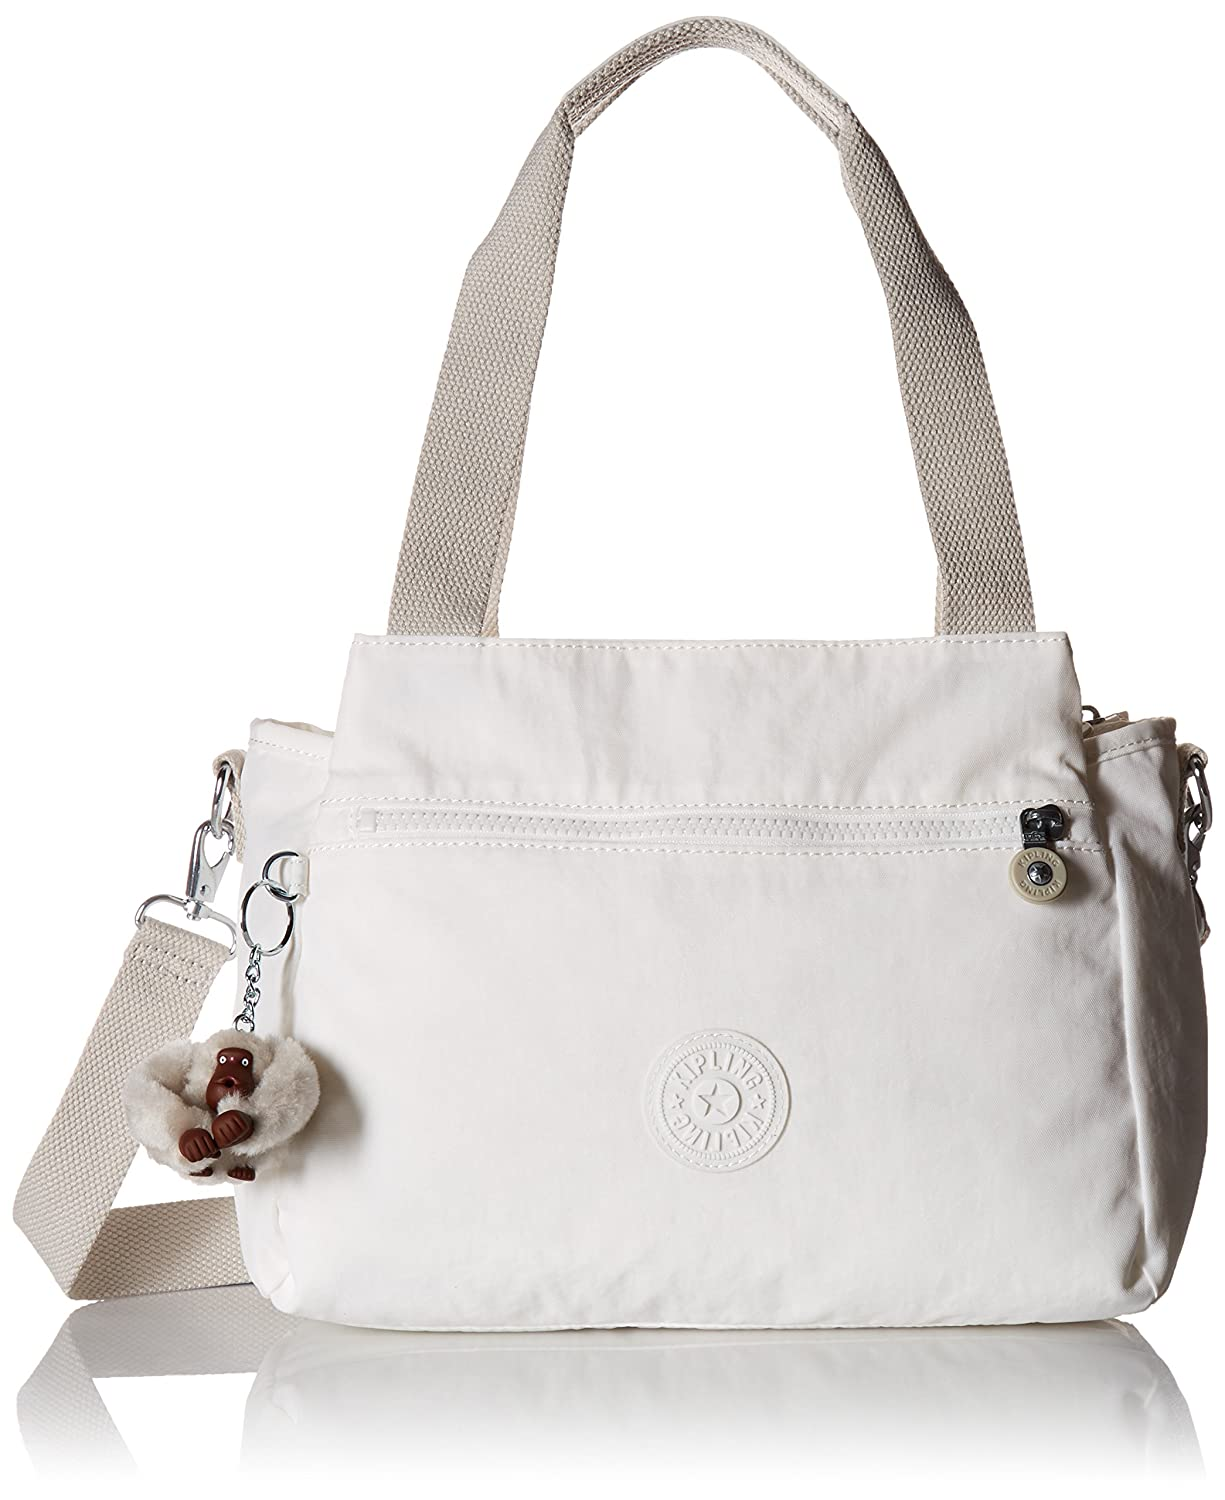 Kipling Elysia Solid Convertible Crossbody Bag HB6938